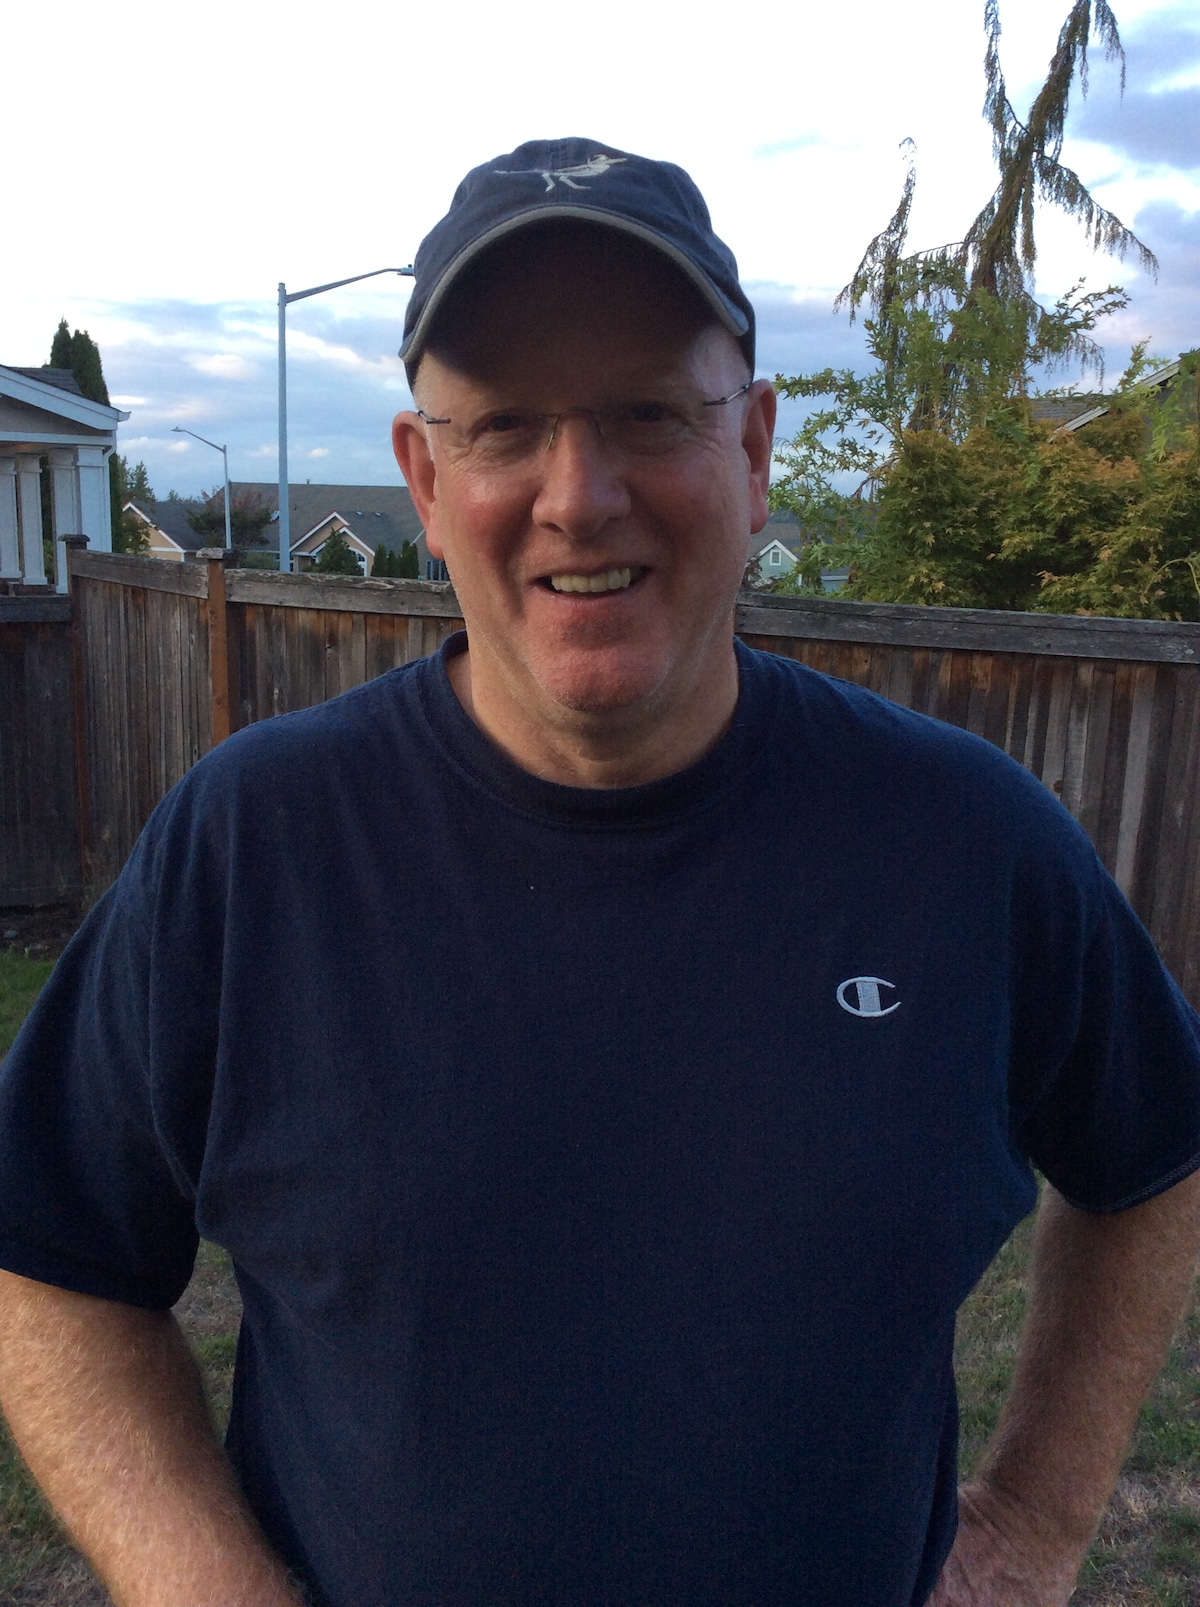 Mike from Sedro-Woolley